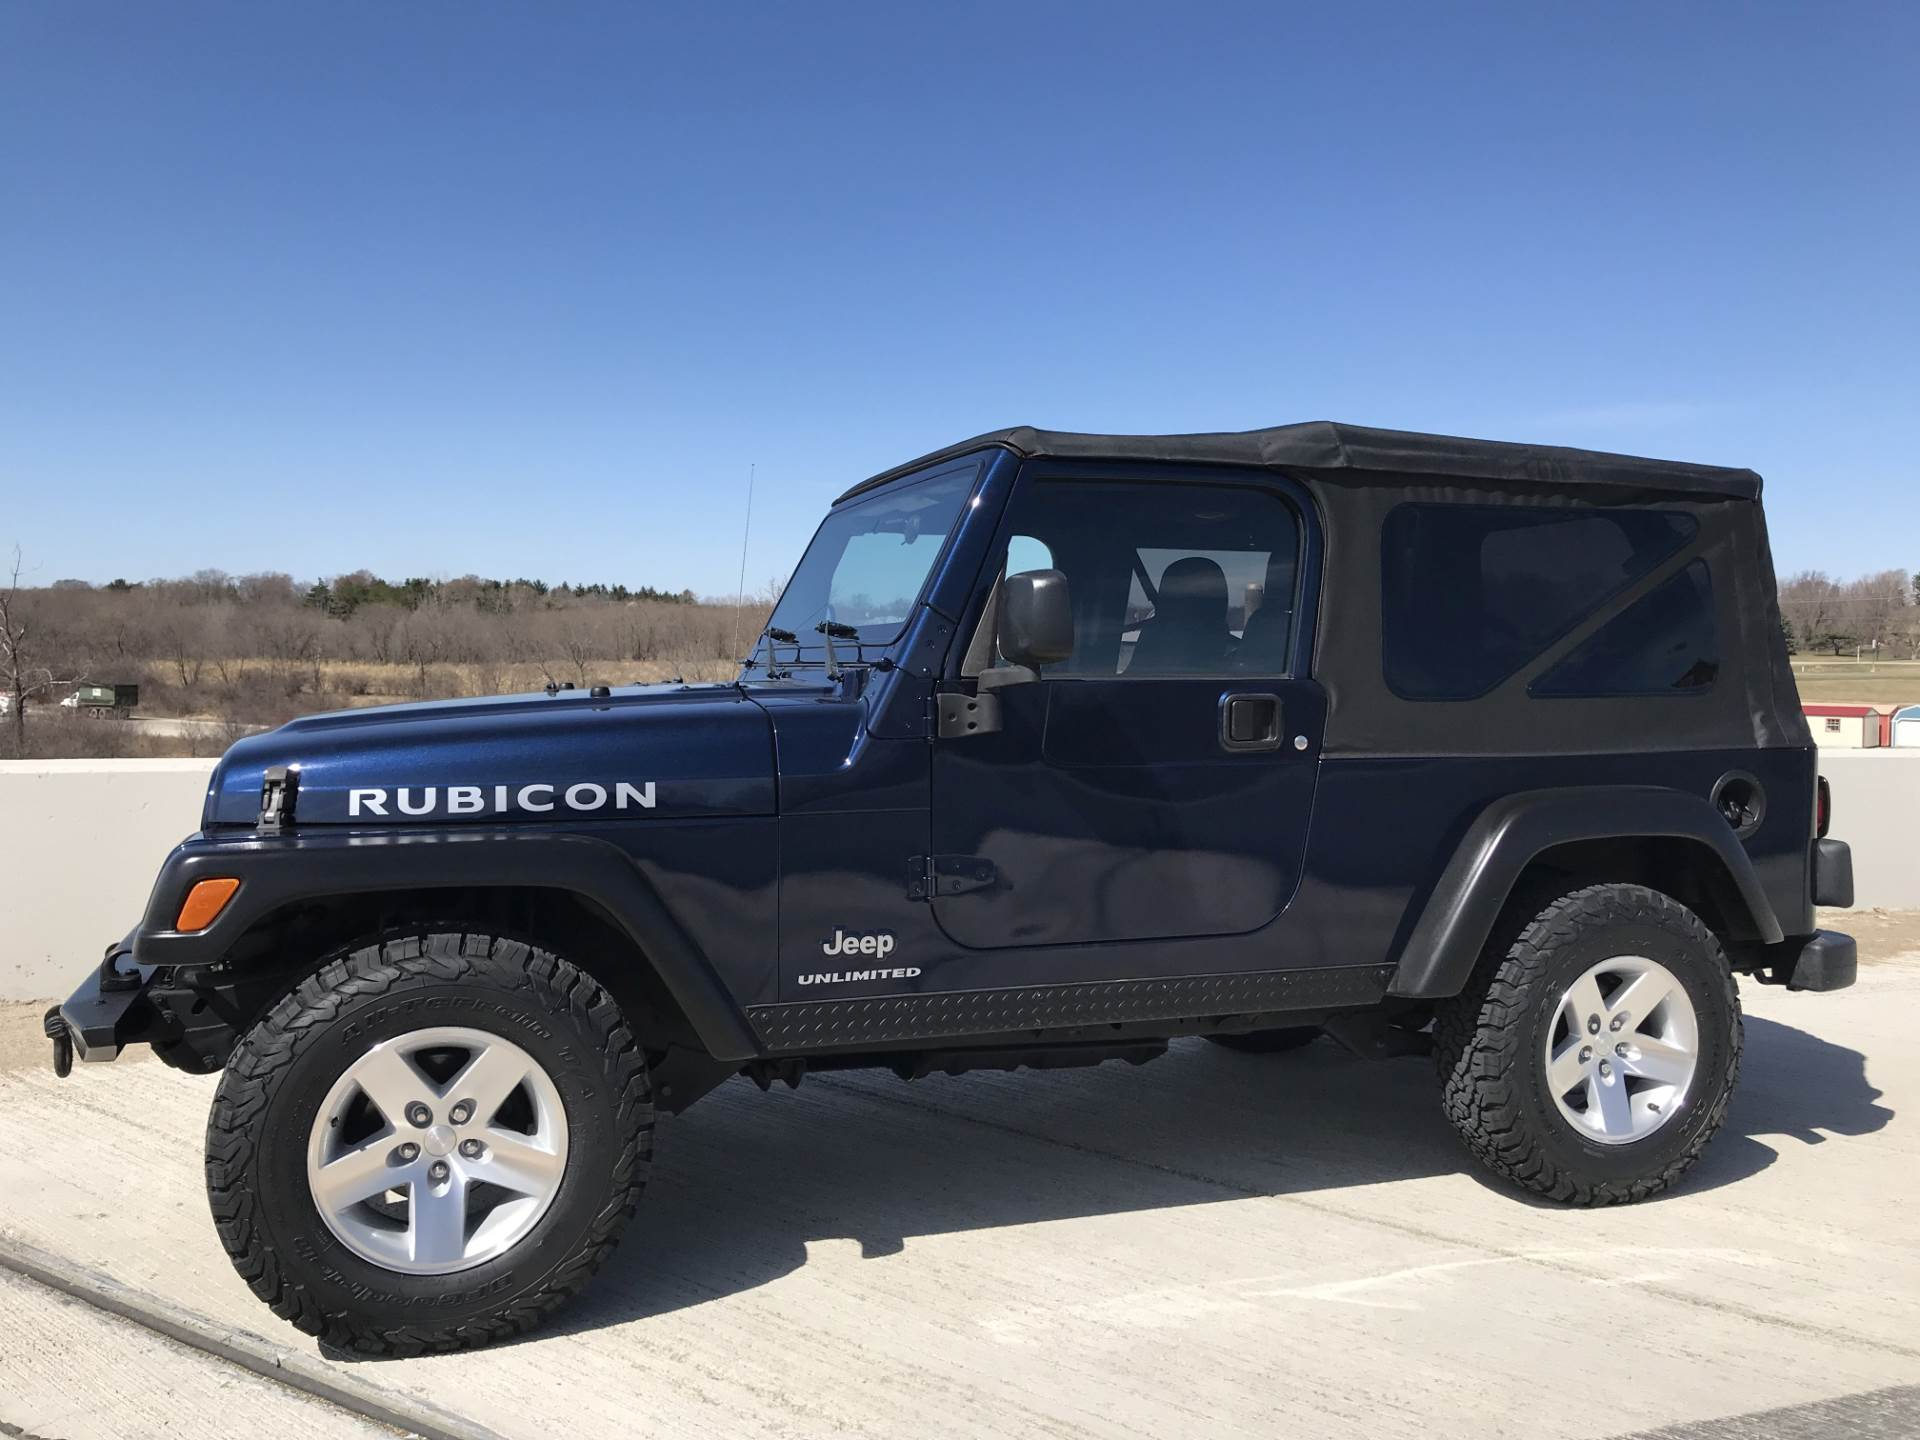 2006 Jeep Wrangler Unlimited Rubicon 2dr SUV 4WD in Big Bend, Wisconsin - Photo 122